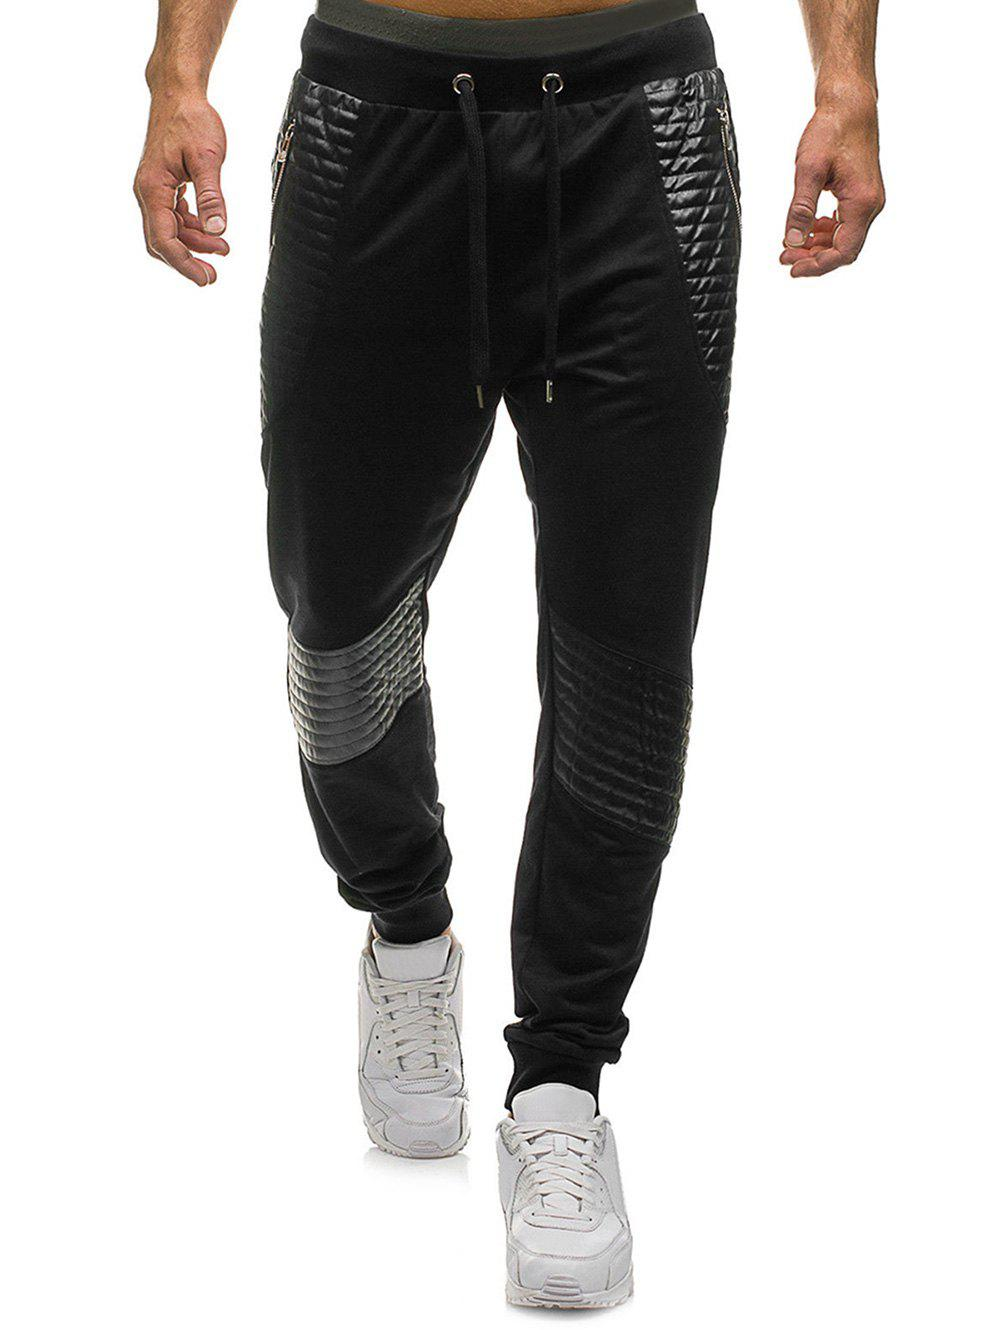 Buy Pleated Patchwork Splicing Drawstring Sport Jogger Pants